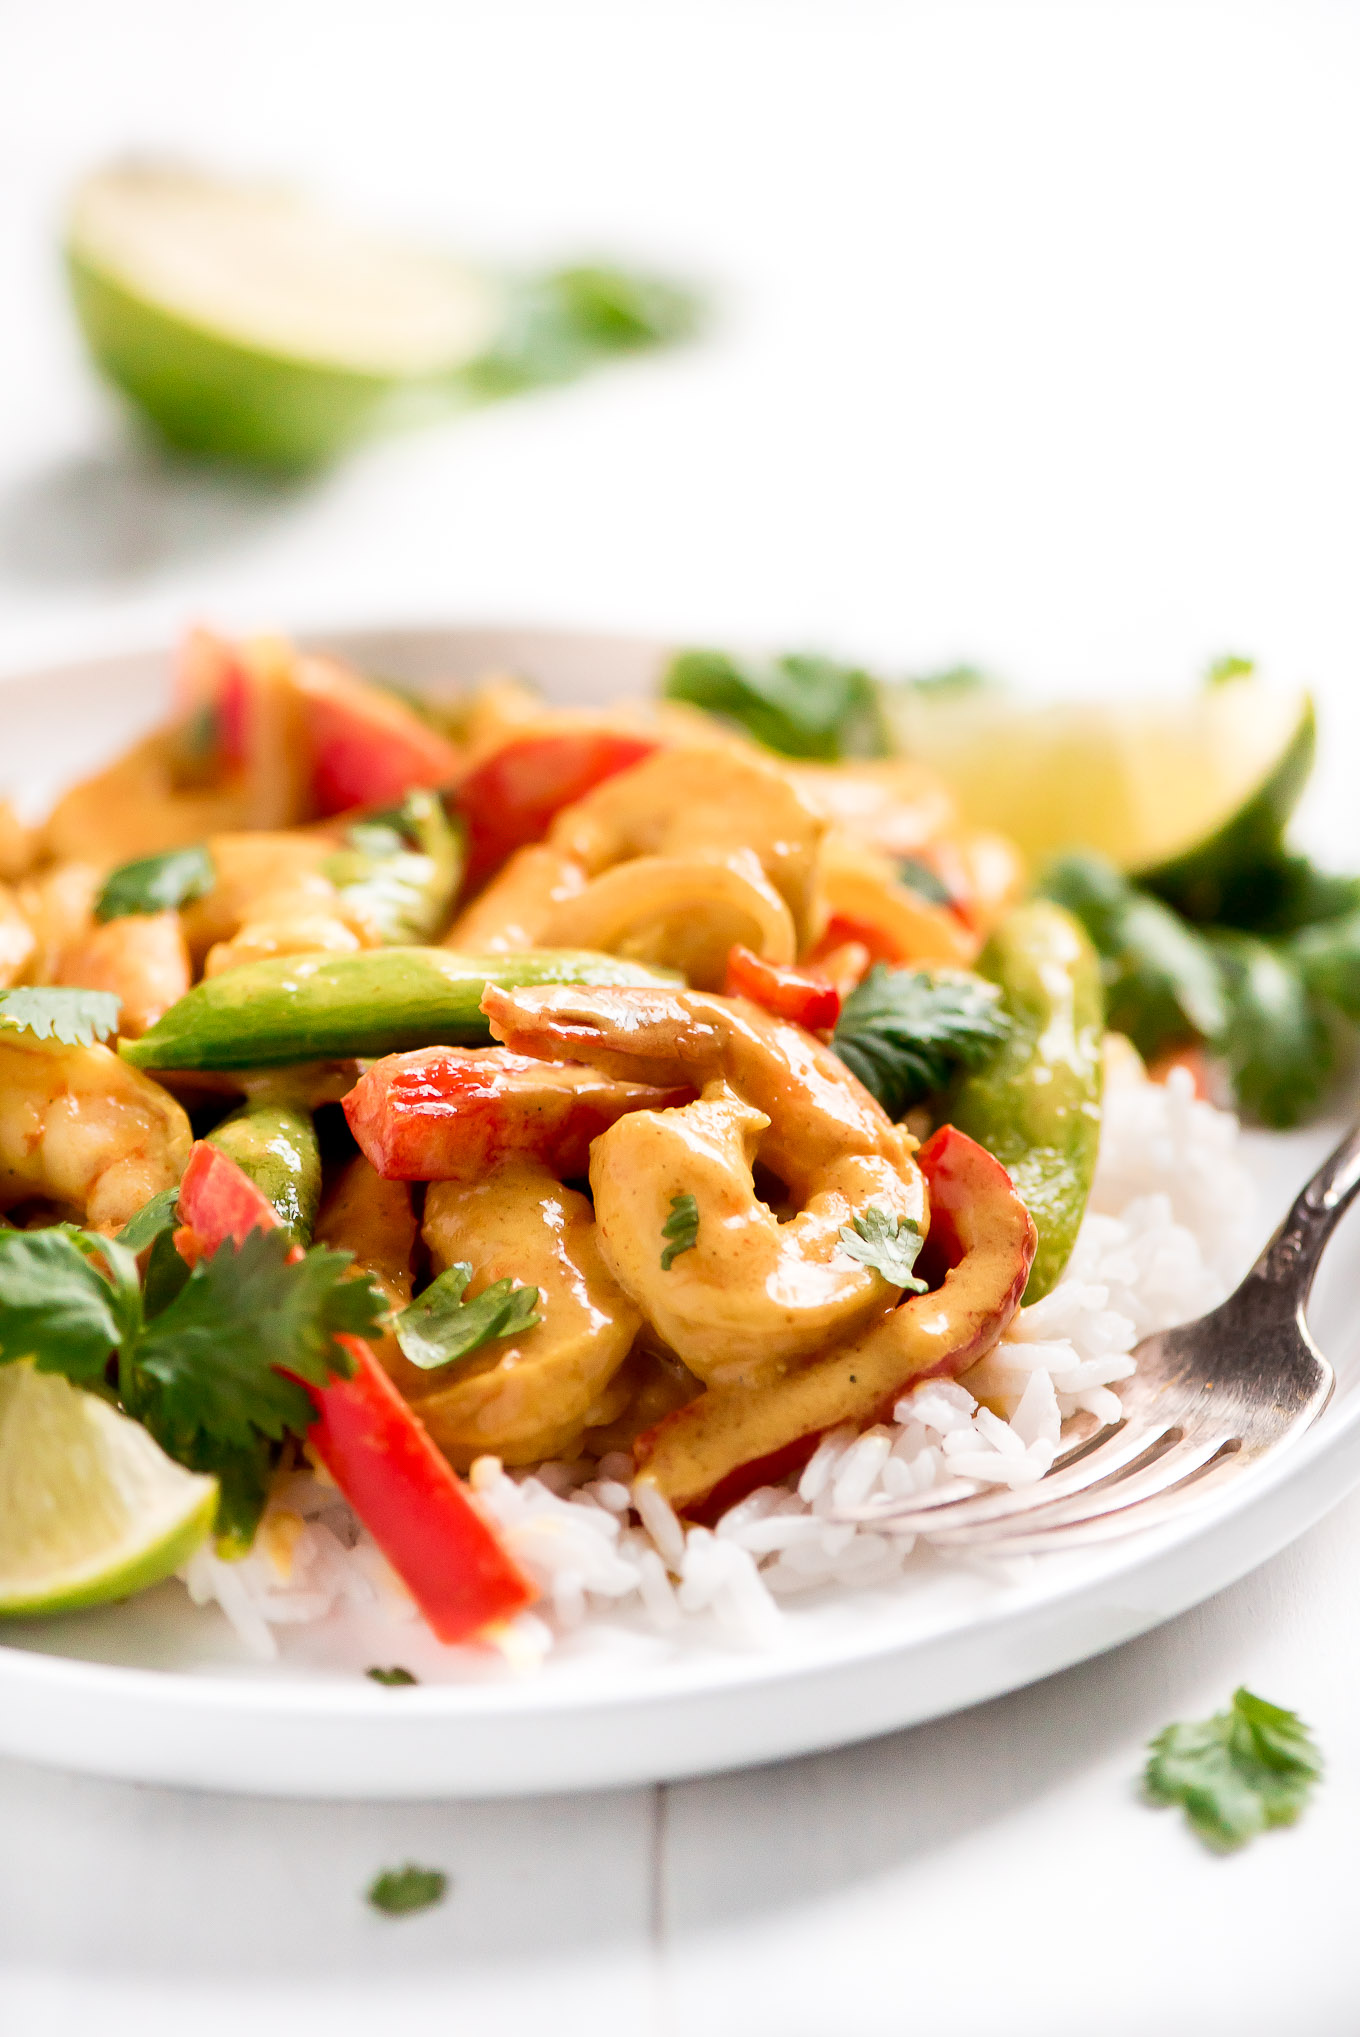 Thai Coconut Curry Shrimp with shrimp, red bell peppers, and sugar snap peas over rice on a plate.